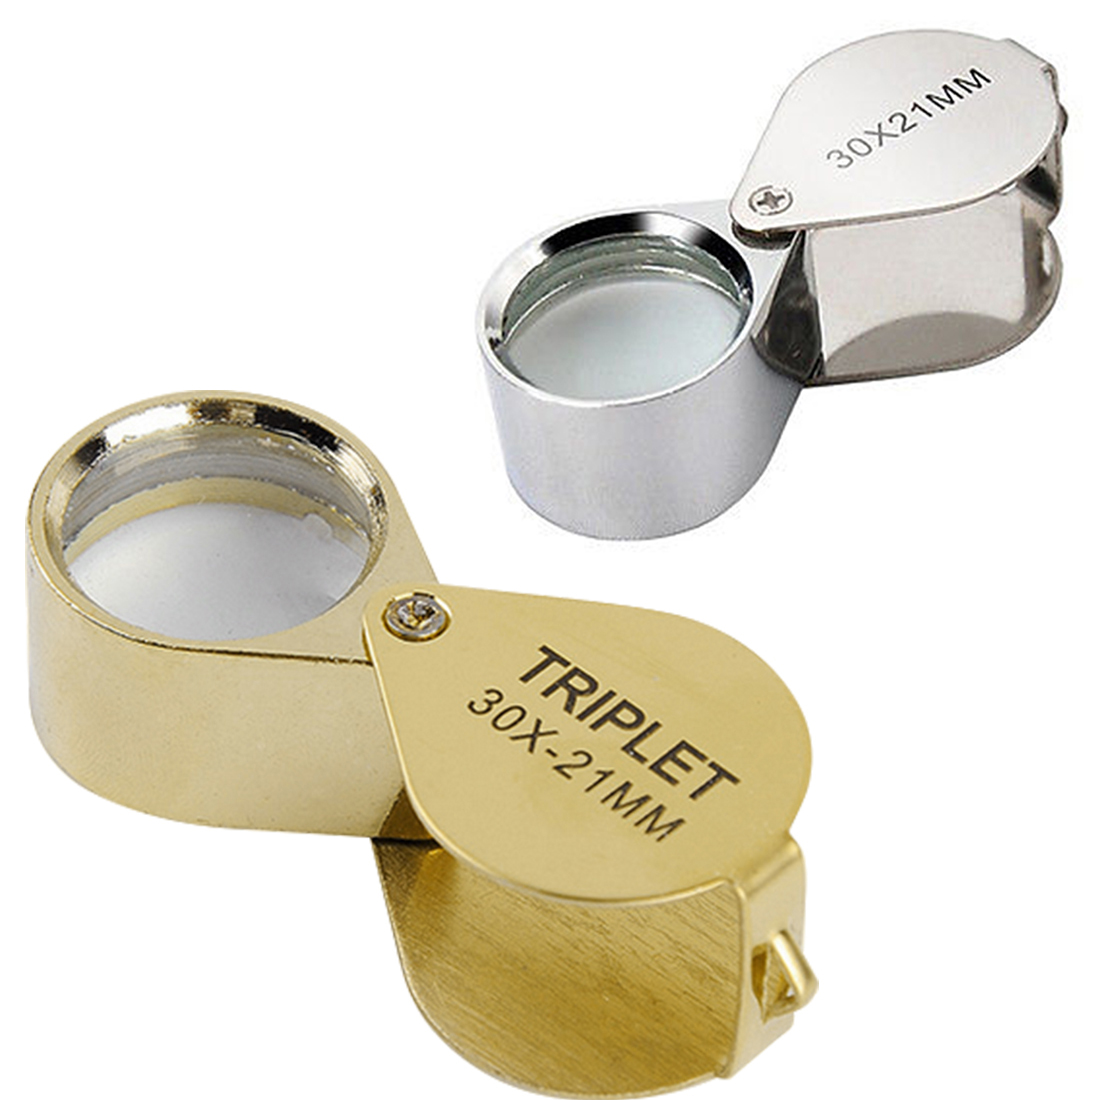 Aiernuo 30 X 21mm Glass Jeweler Loupe Loop Eye Magnifier Magnifying Magnifier Metal Body Silver